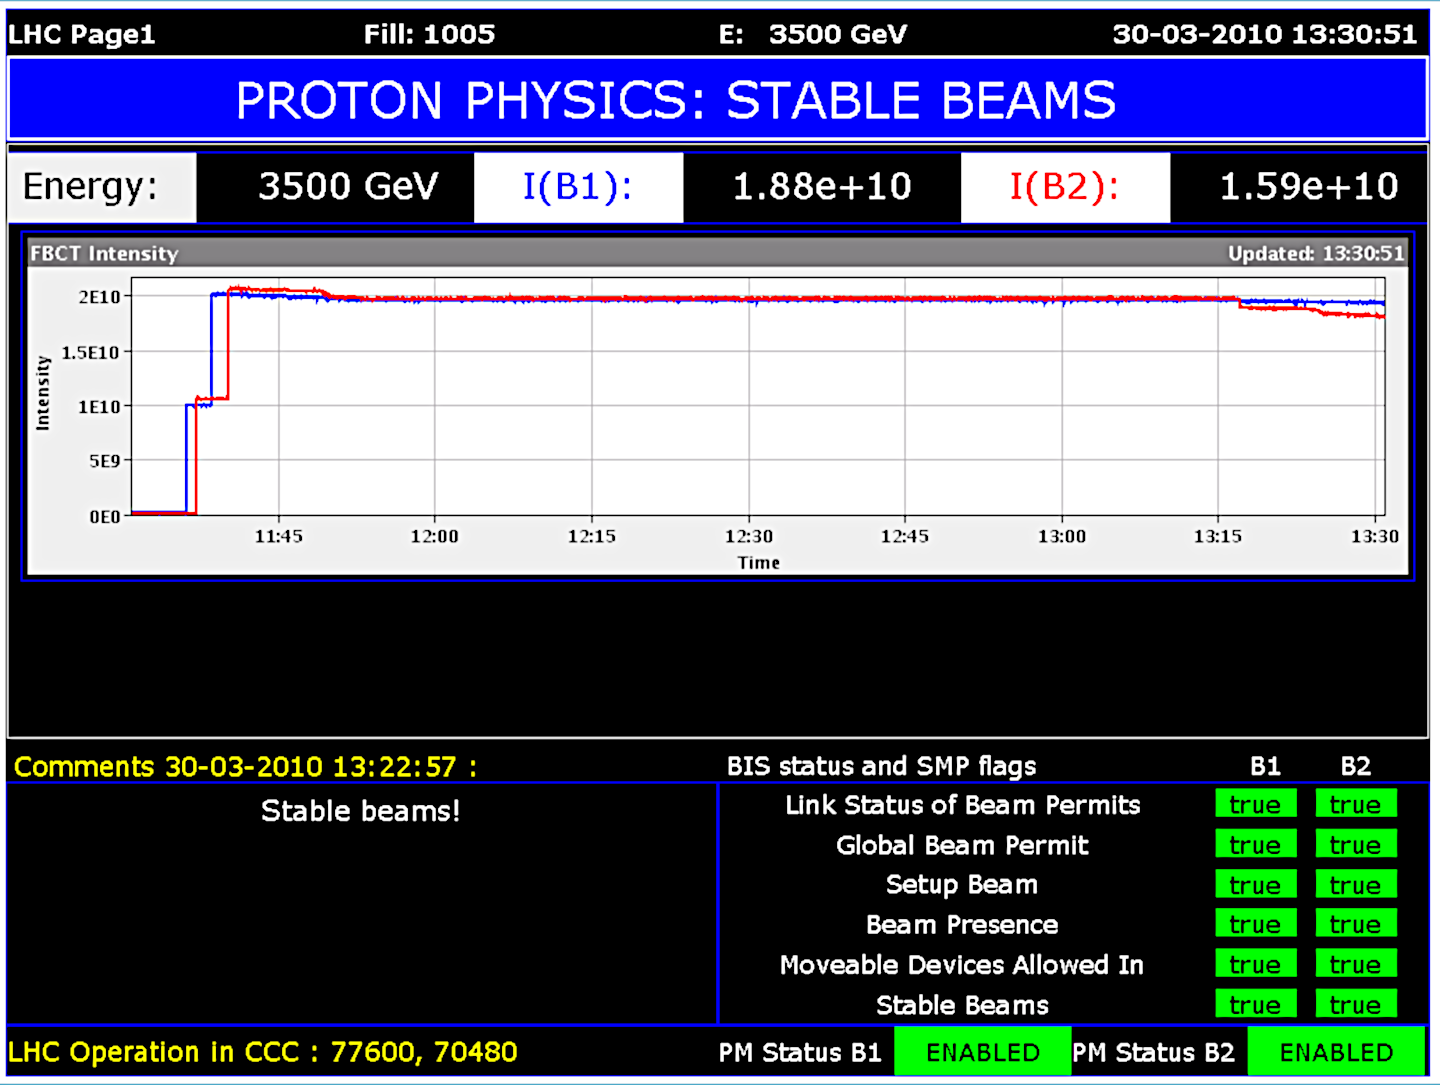 A screenshot of a control screen showing the LHC's status at 13:30 on 30 March 2010. The text on top says 'Proton Physics: Stable Beams' and the image shows a graph for two proton beams at 3.5 teraelectronvolts each.